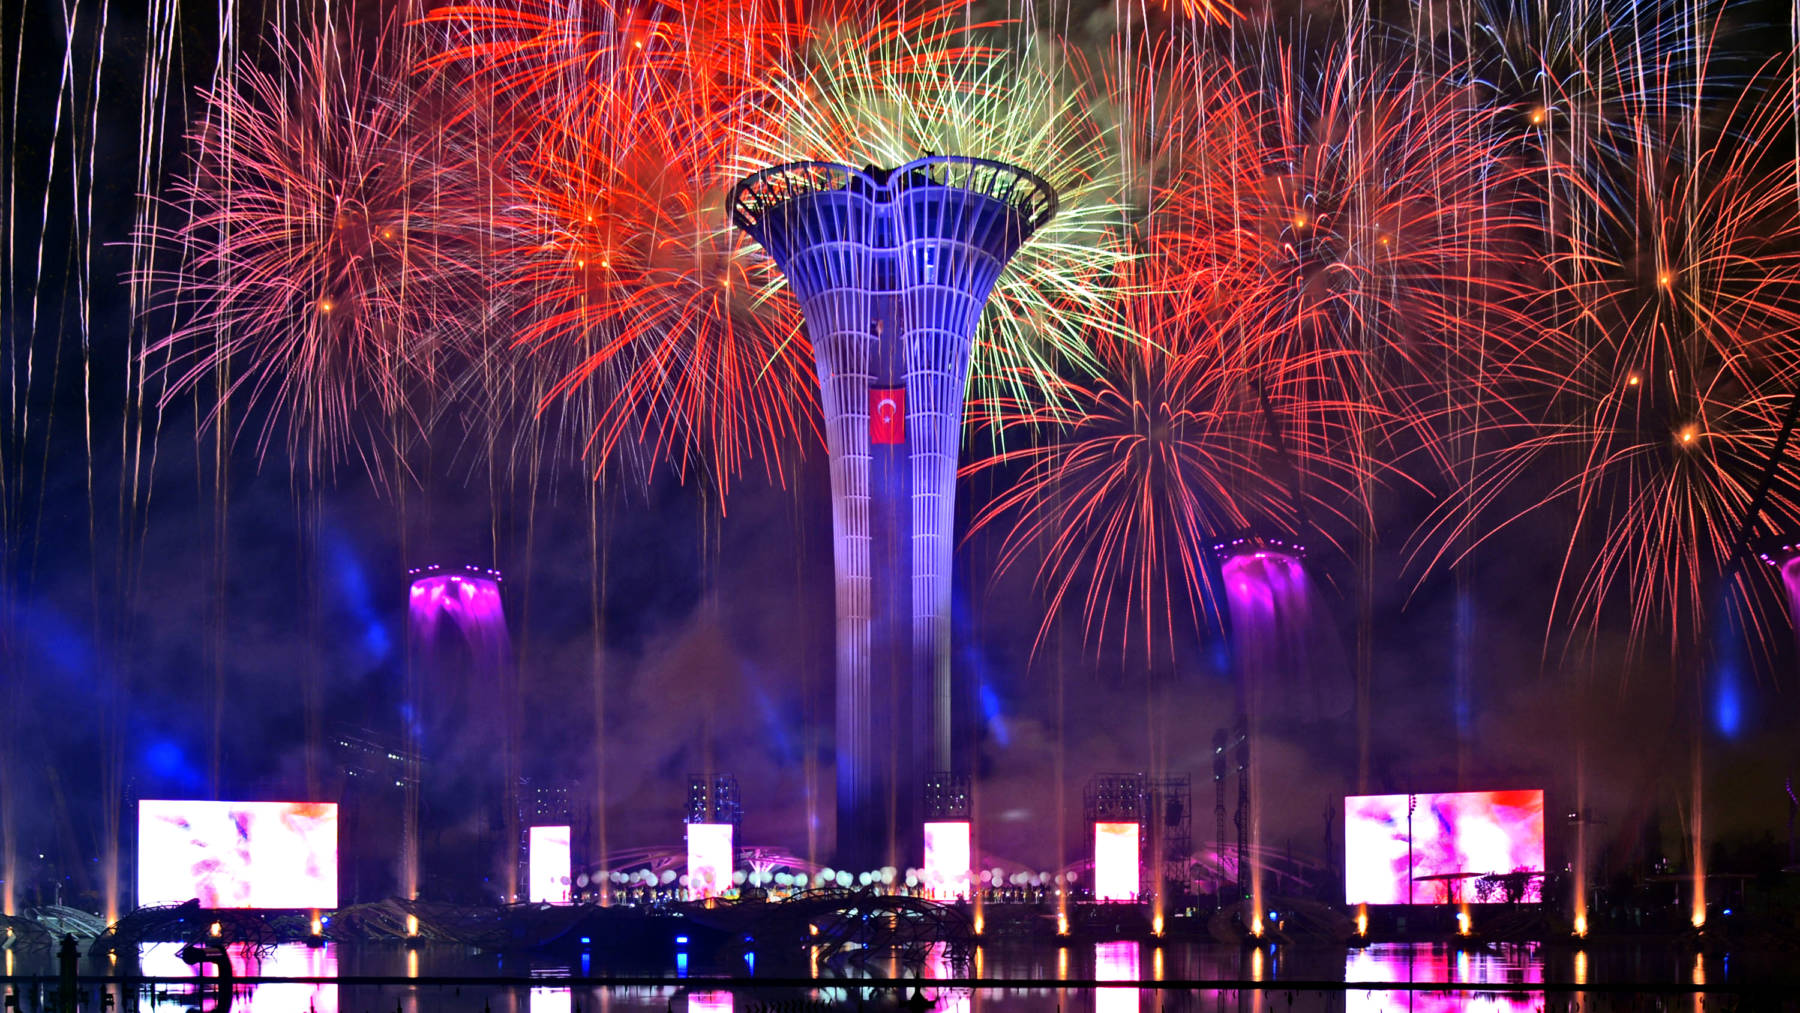 Expo Tower with fire works